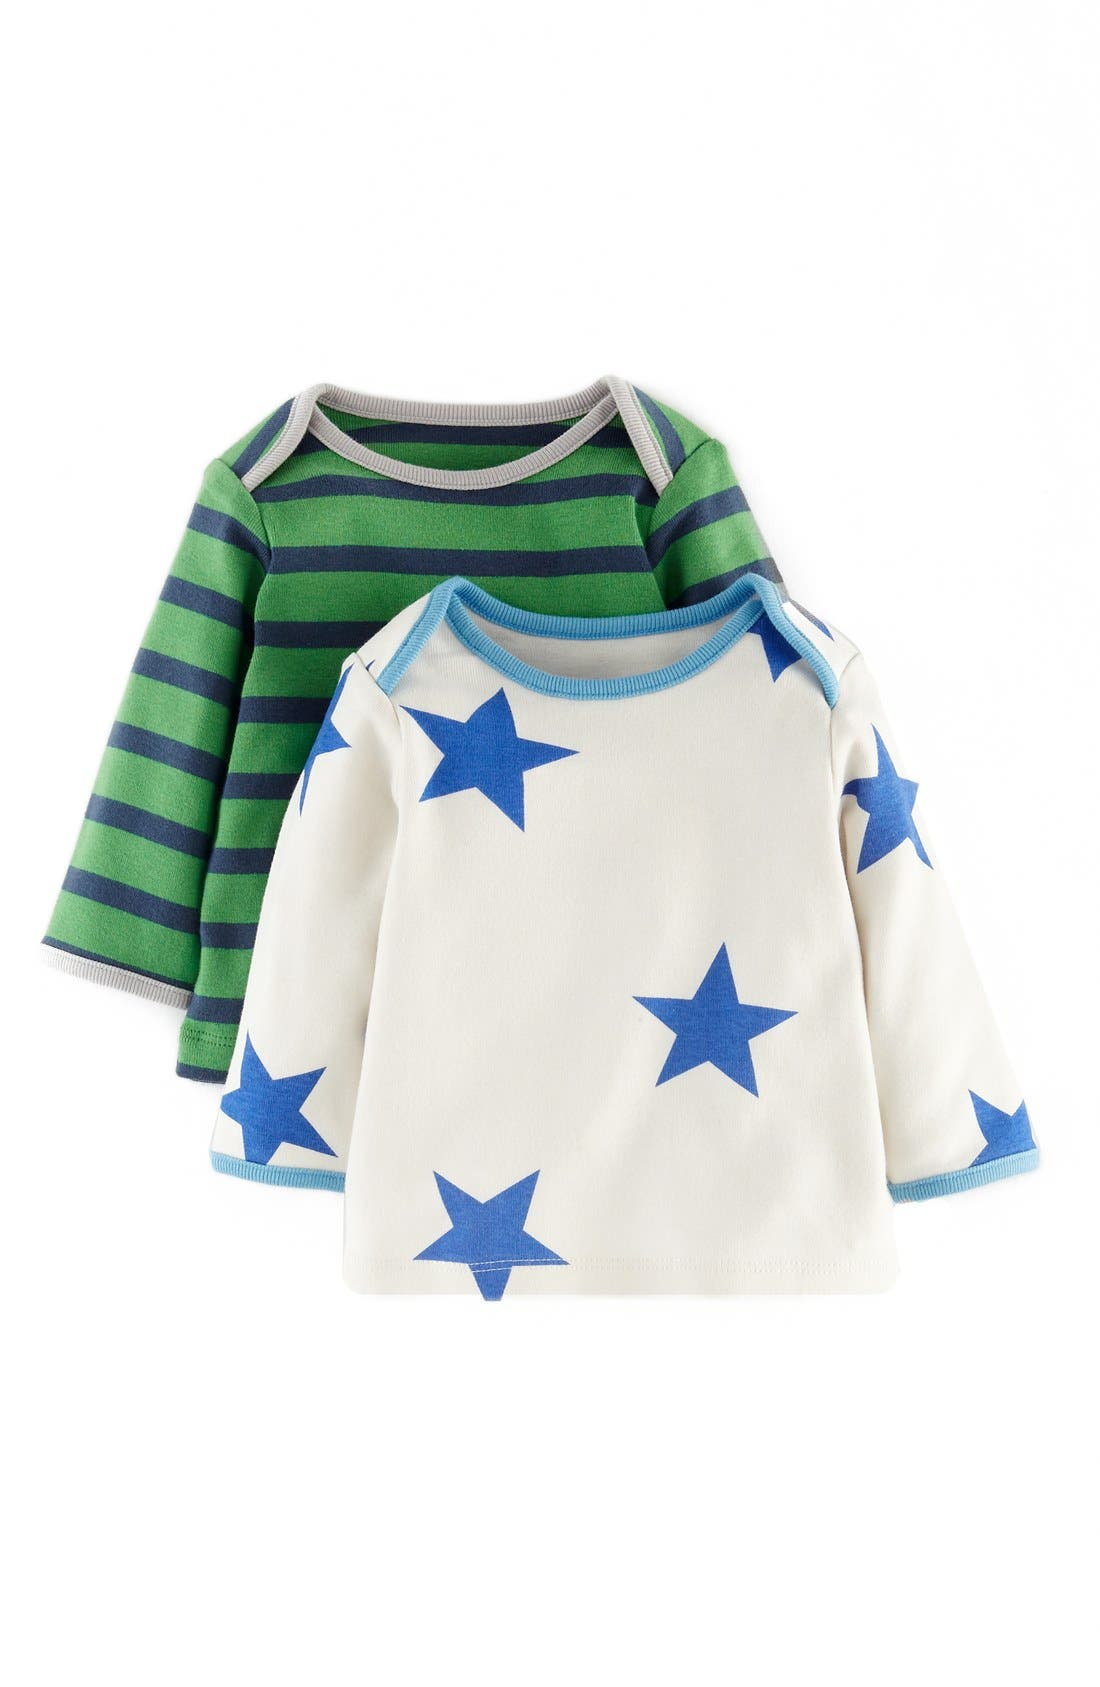 Alternate Image 1 Selected - Mini Boden Long Sleeve Cotton T-Shirt (2-Pack) (Baby Boys)